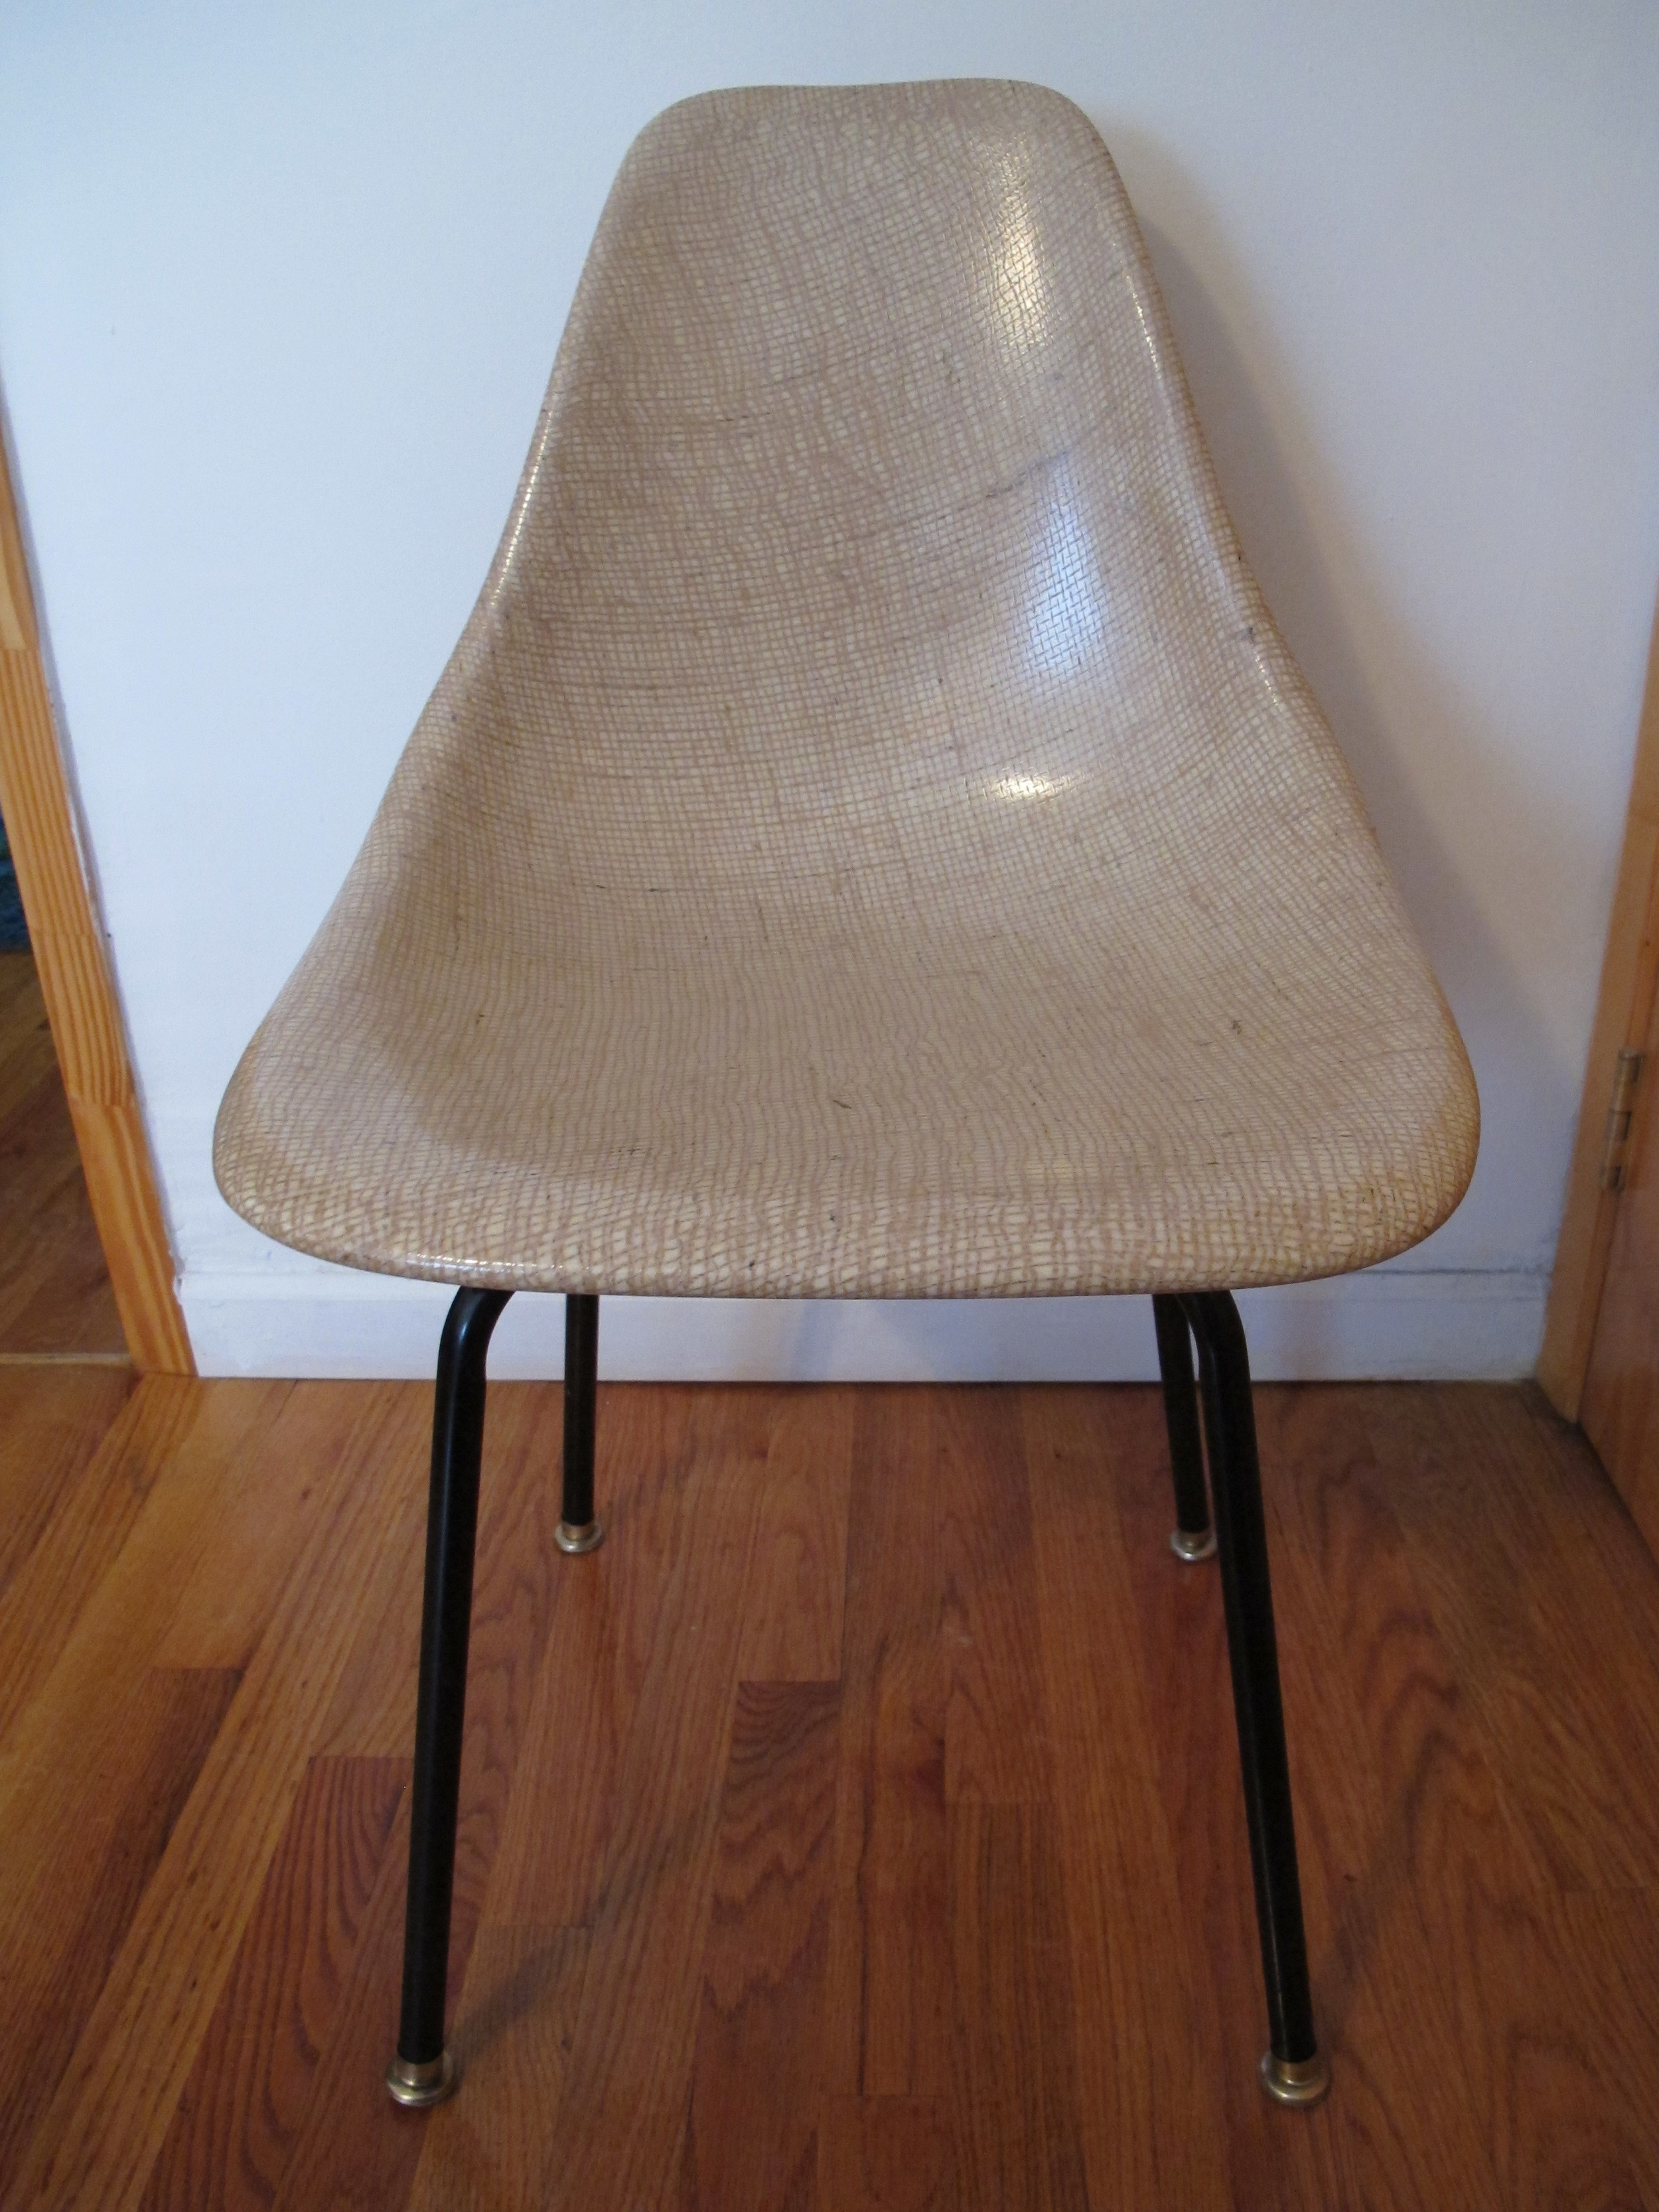 TAN WEAVE PATTERN EAMES STYLE SHELL CHAIR